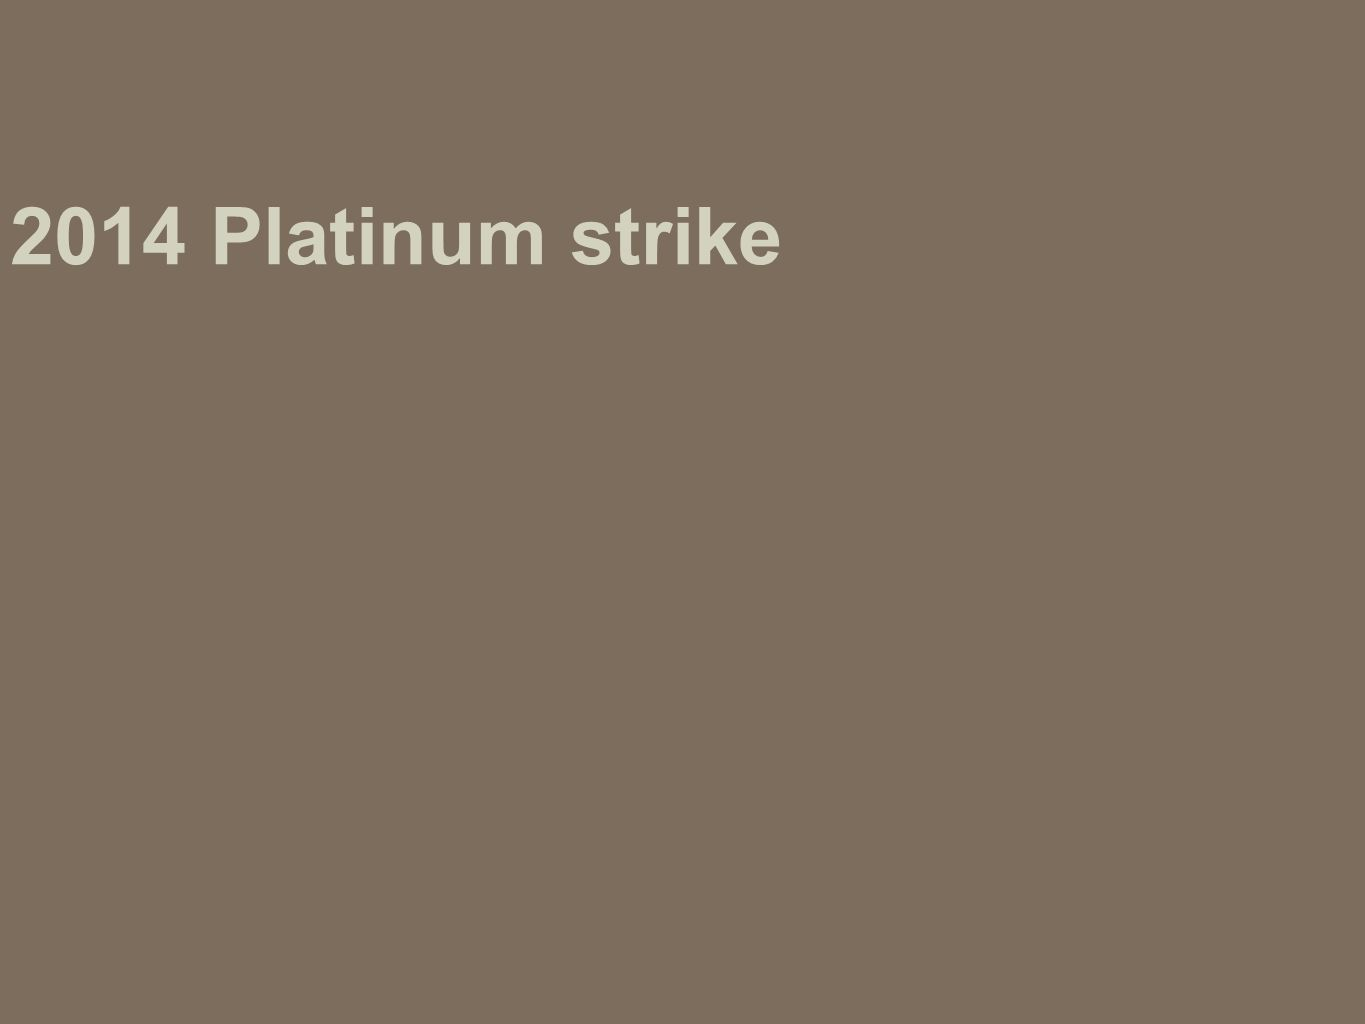 2014 Platinum strike